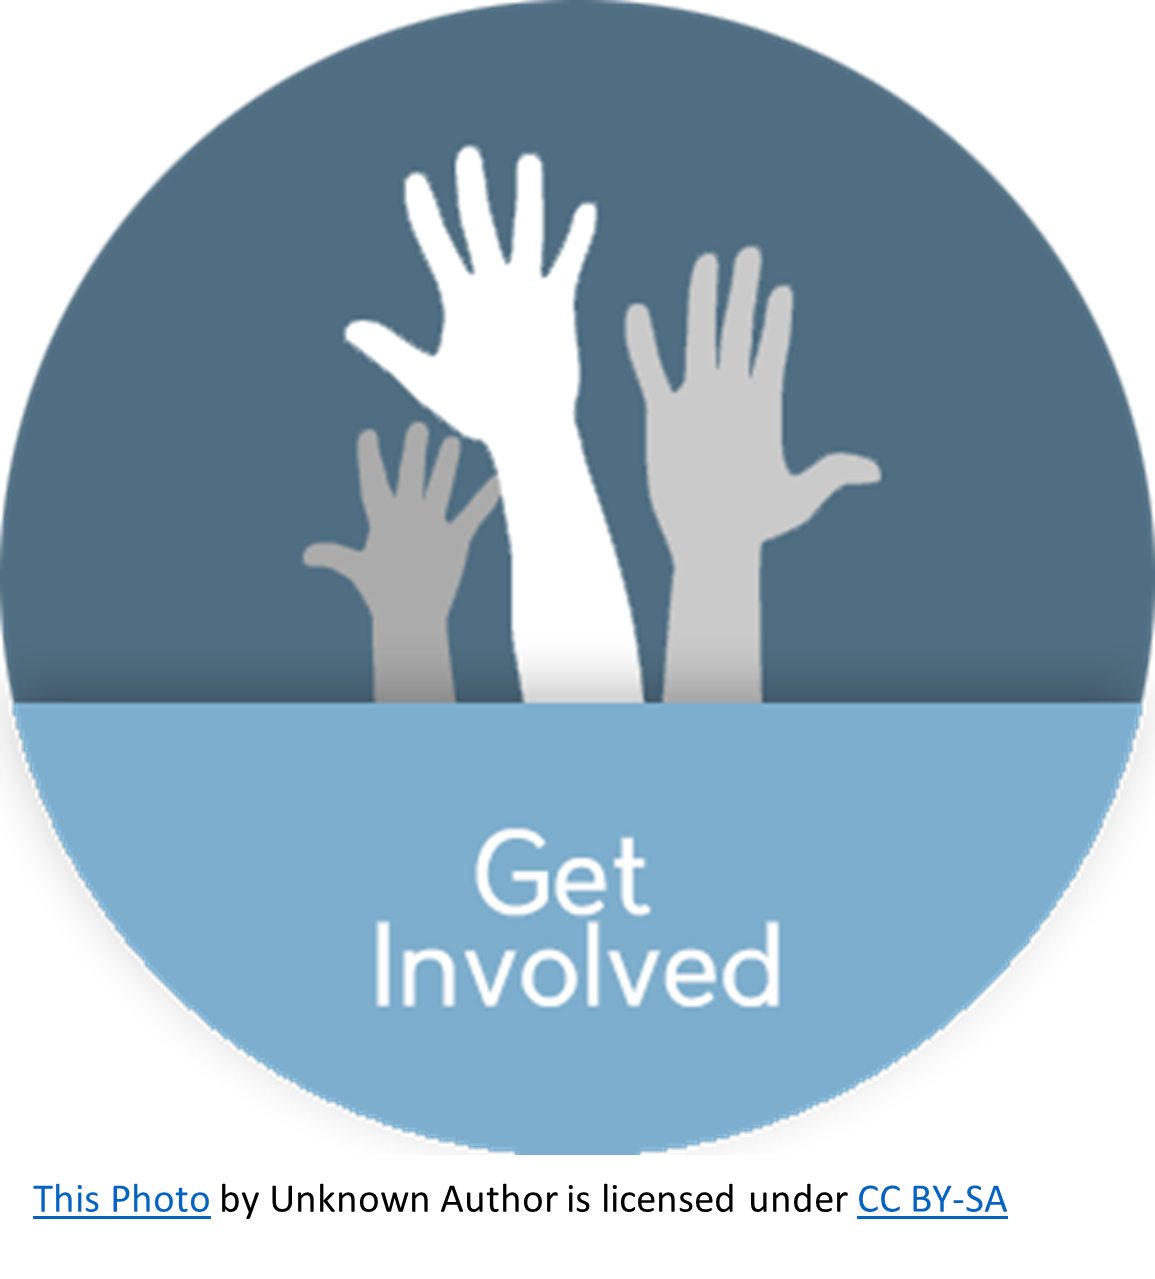 Hands raised to show involvement